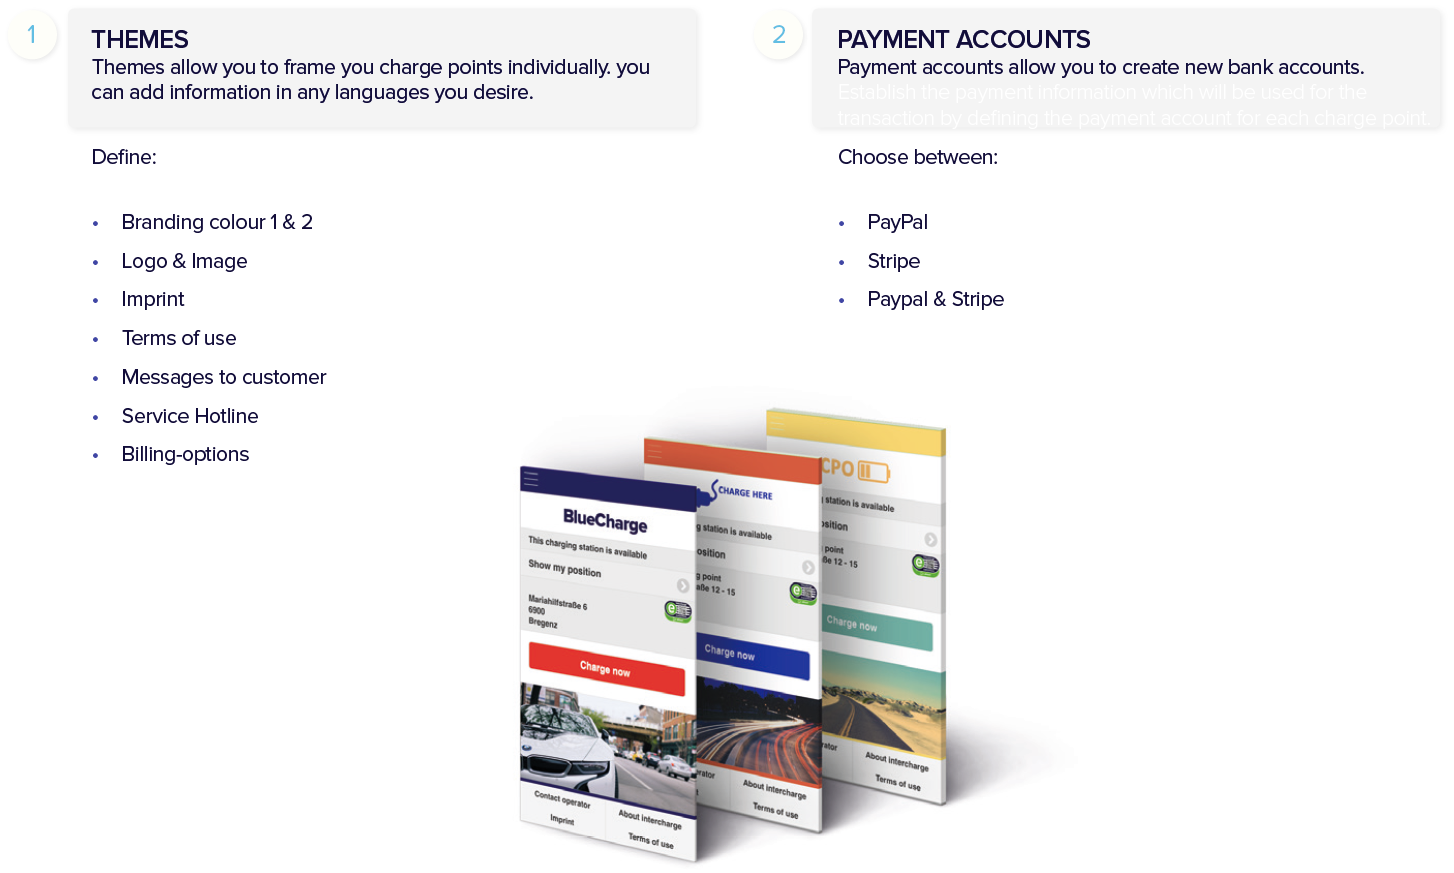 themes_and_payment_accounts.PNG